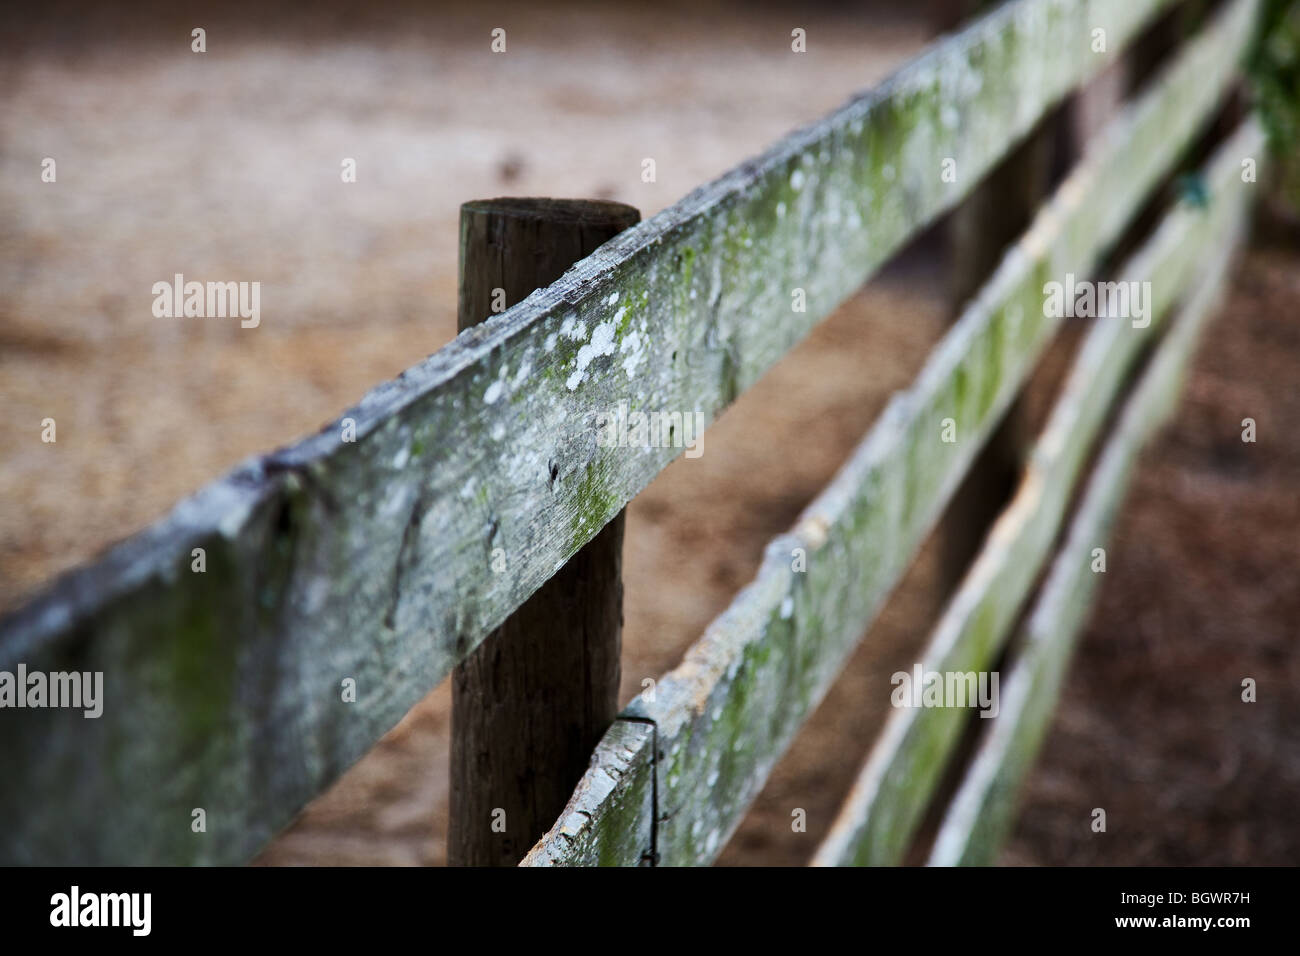 wooden wall fence planks stockfotos wooden wall fence planks bilder alamy. Black Bedroom Furniture Sets. Home Design Ideas